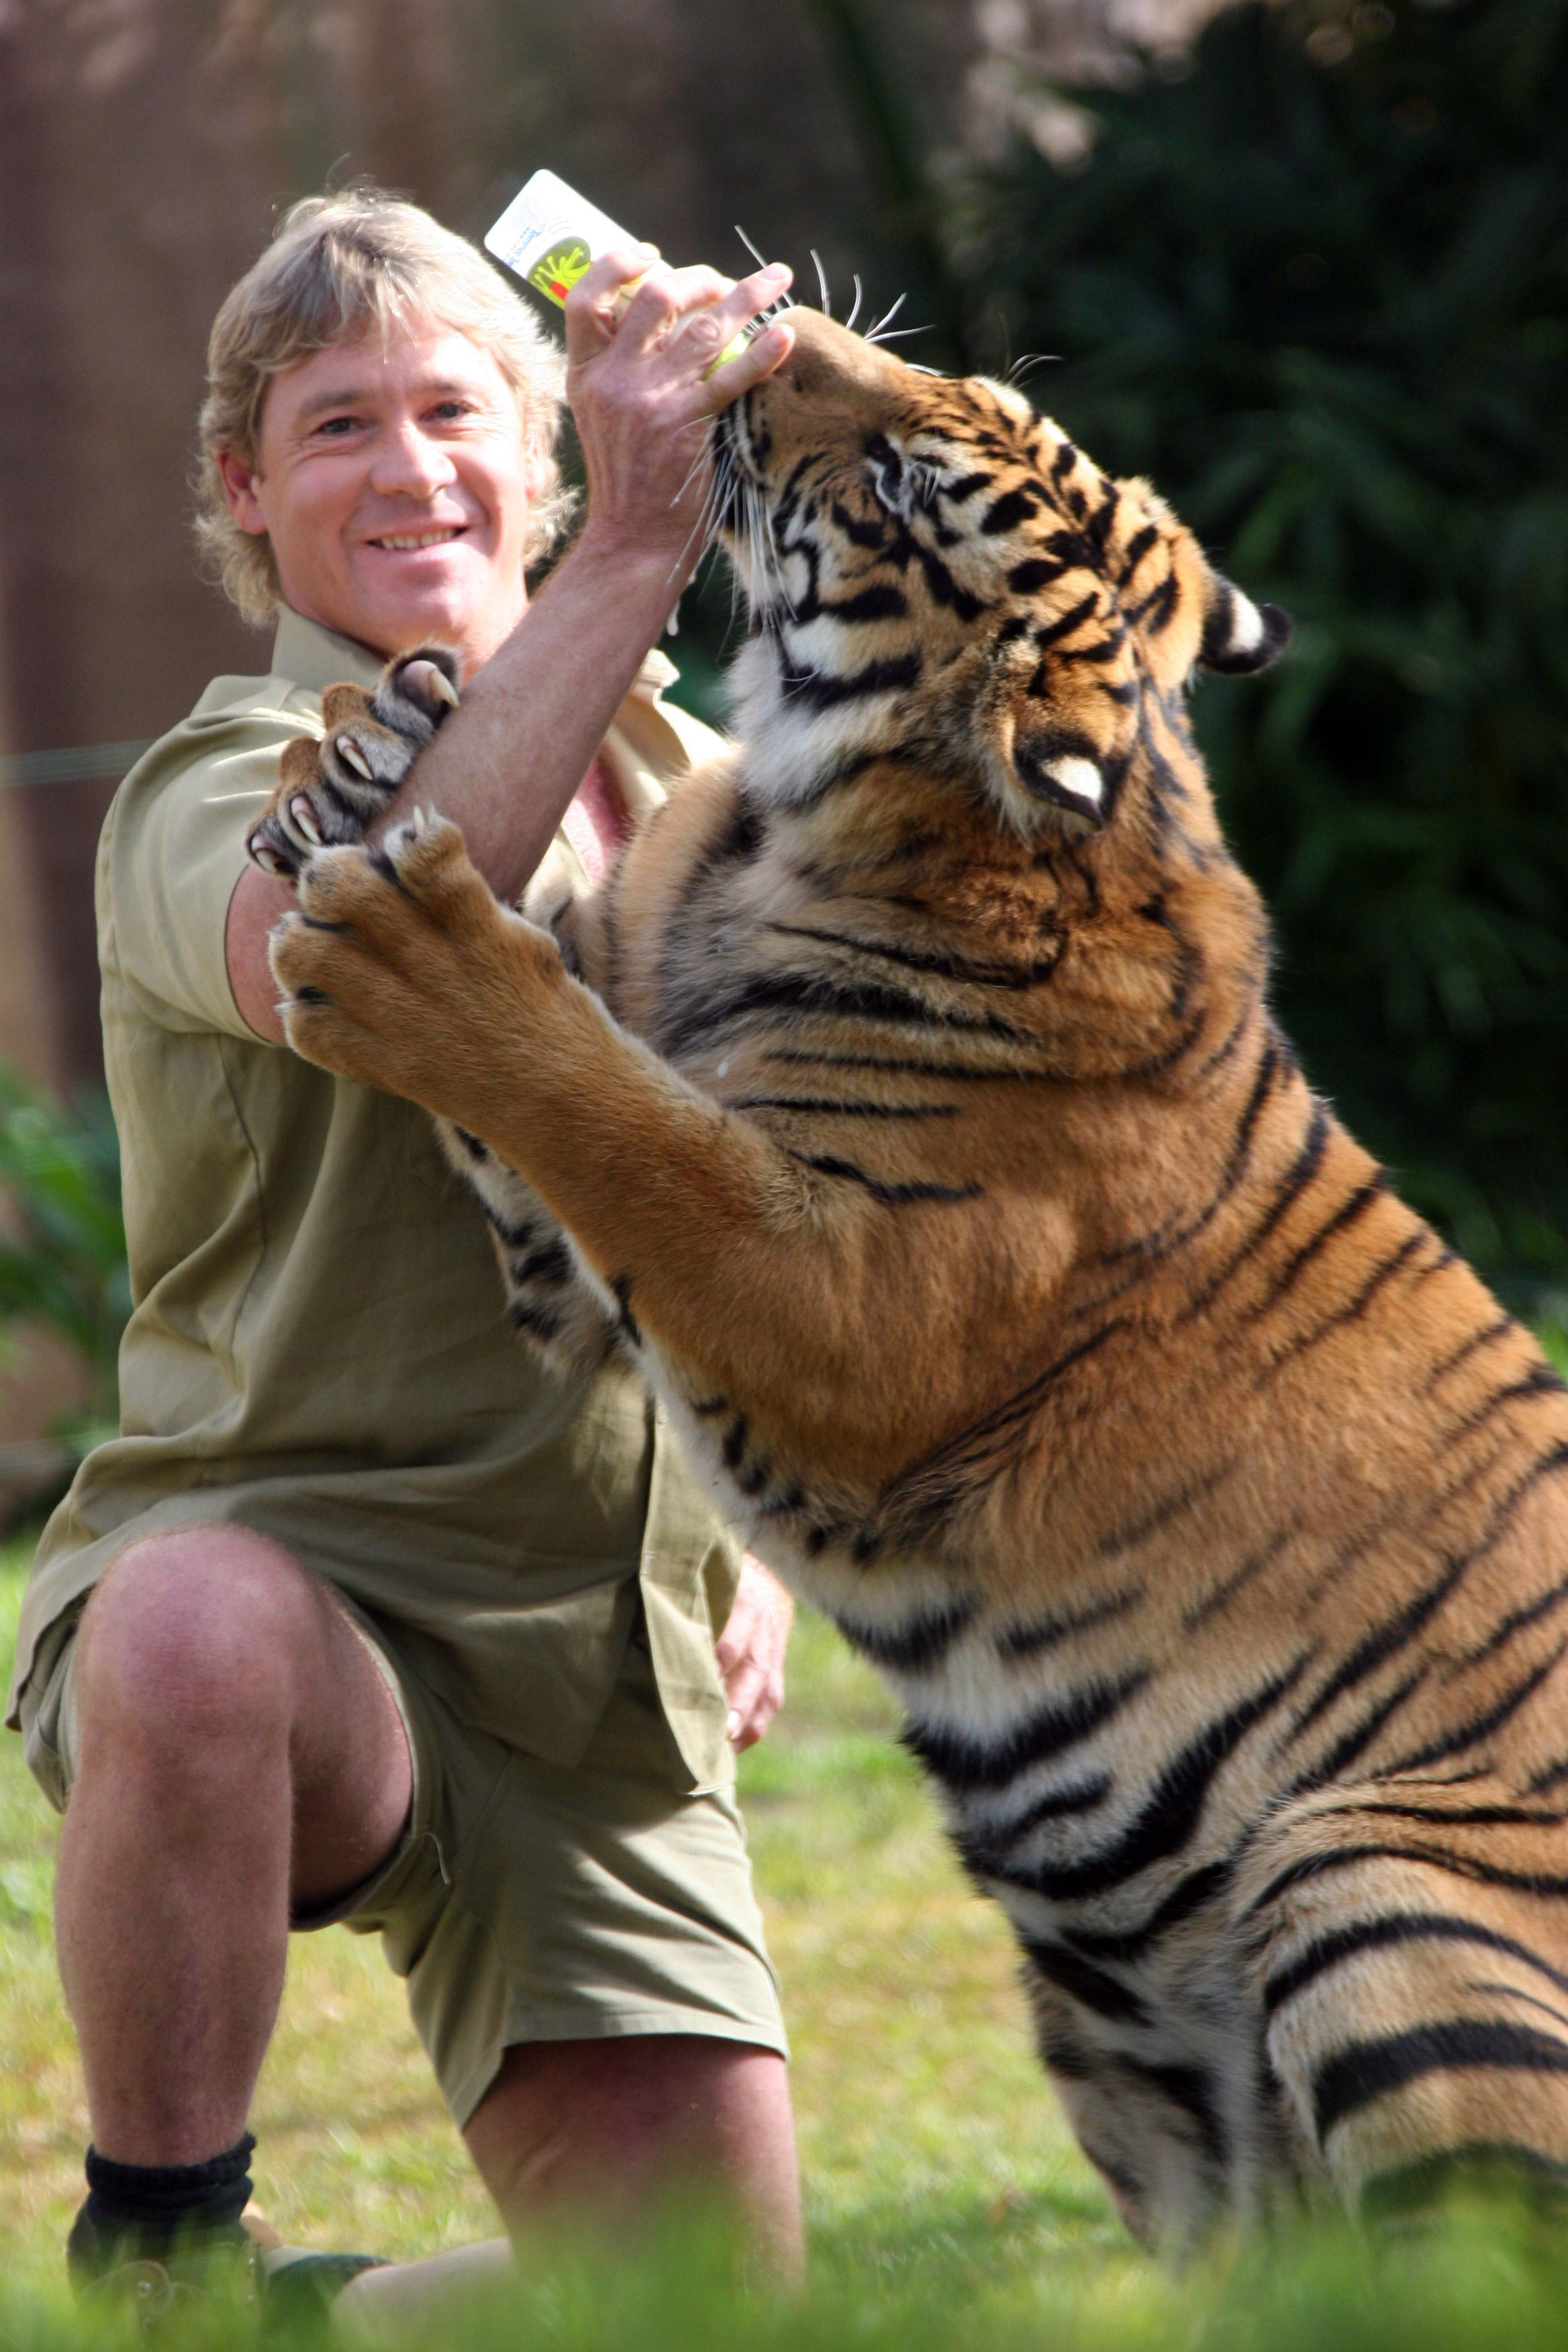 Steve Irwin poses with a tiger at Australia Zoo June 1, 2005 in Beerwah, Australia.. Photos: Getty Images